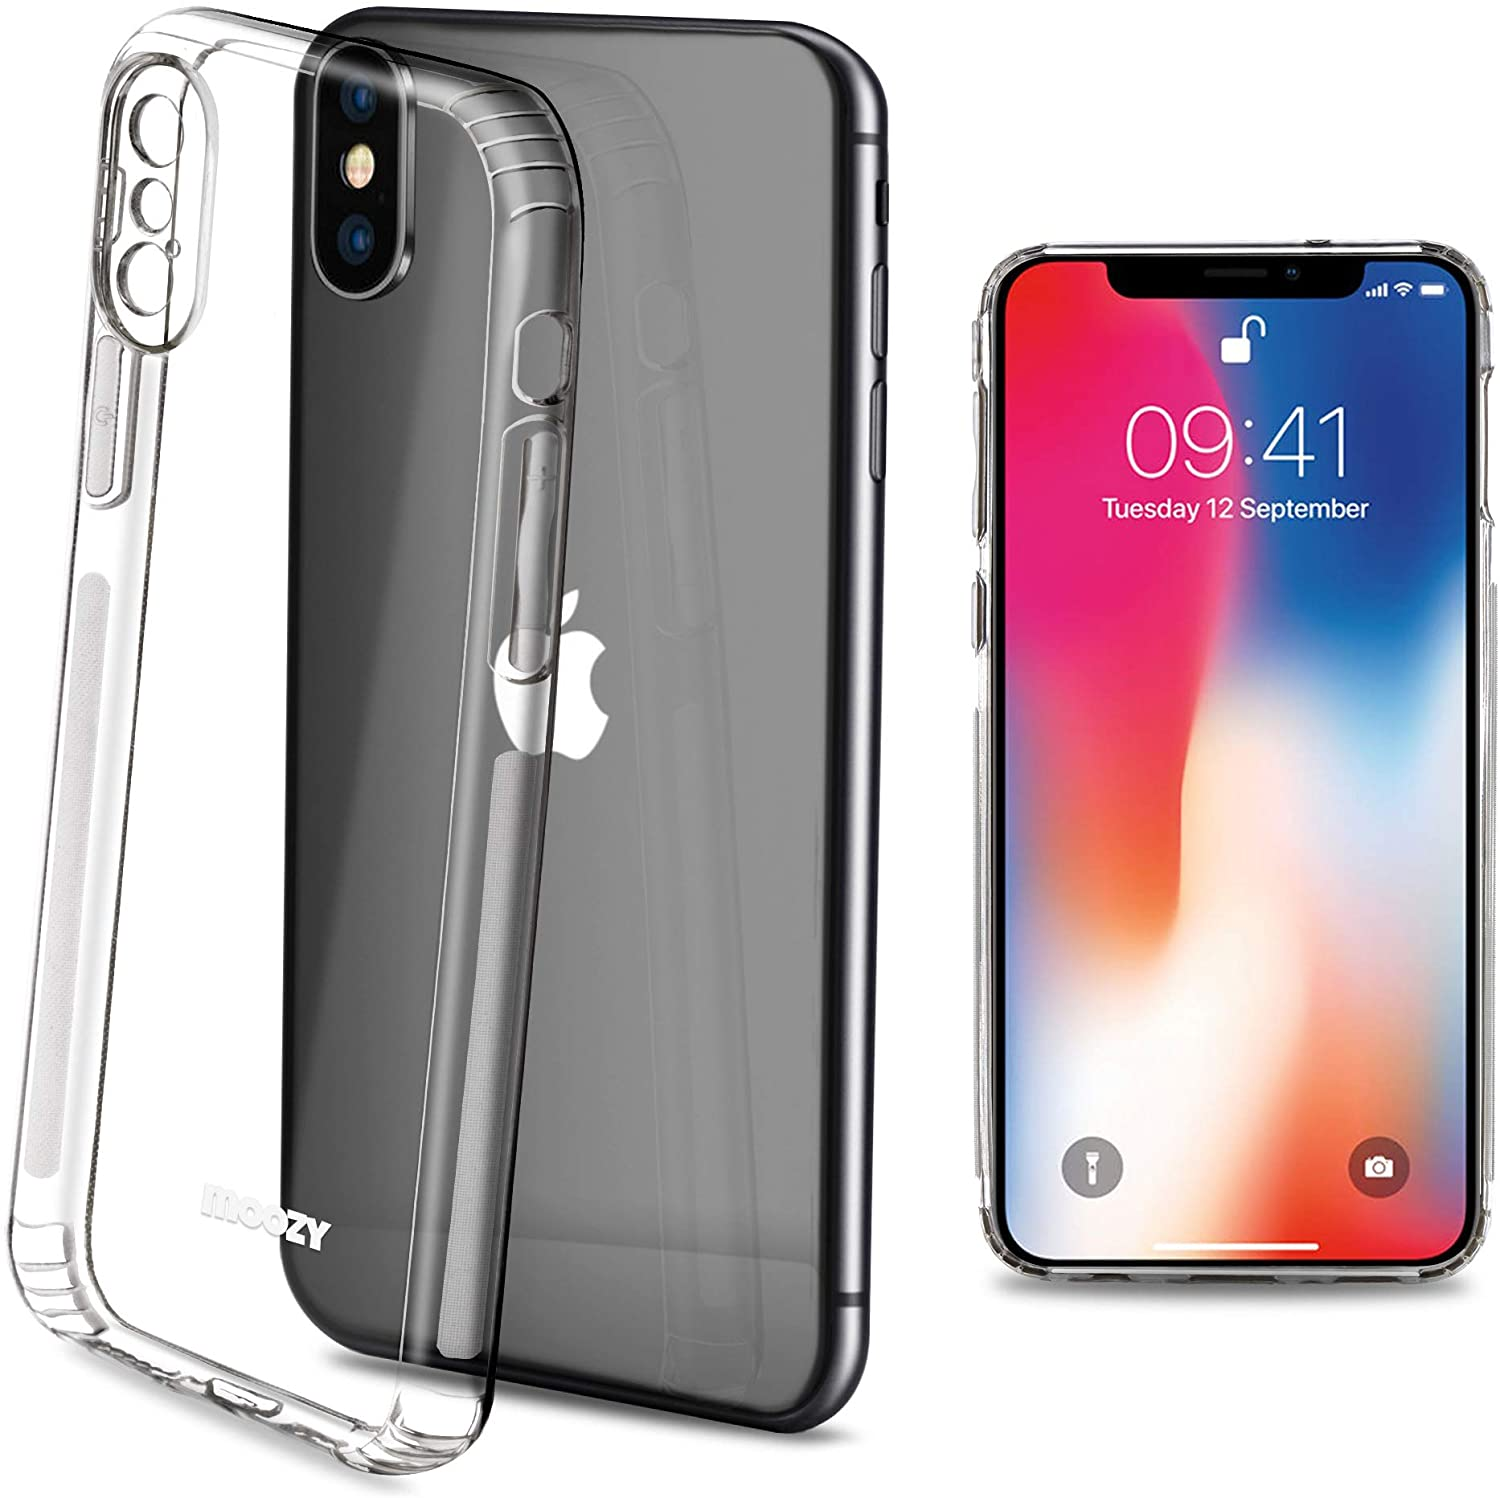 Moozy Frosted Edition Clear Silicone Case for iPhone X and iPhone Xs - Non-Slip Touch Lightweight Transparent Soft TPU Cover